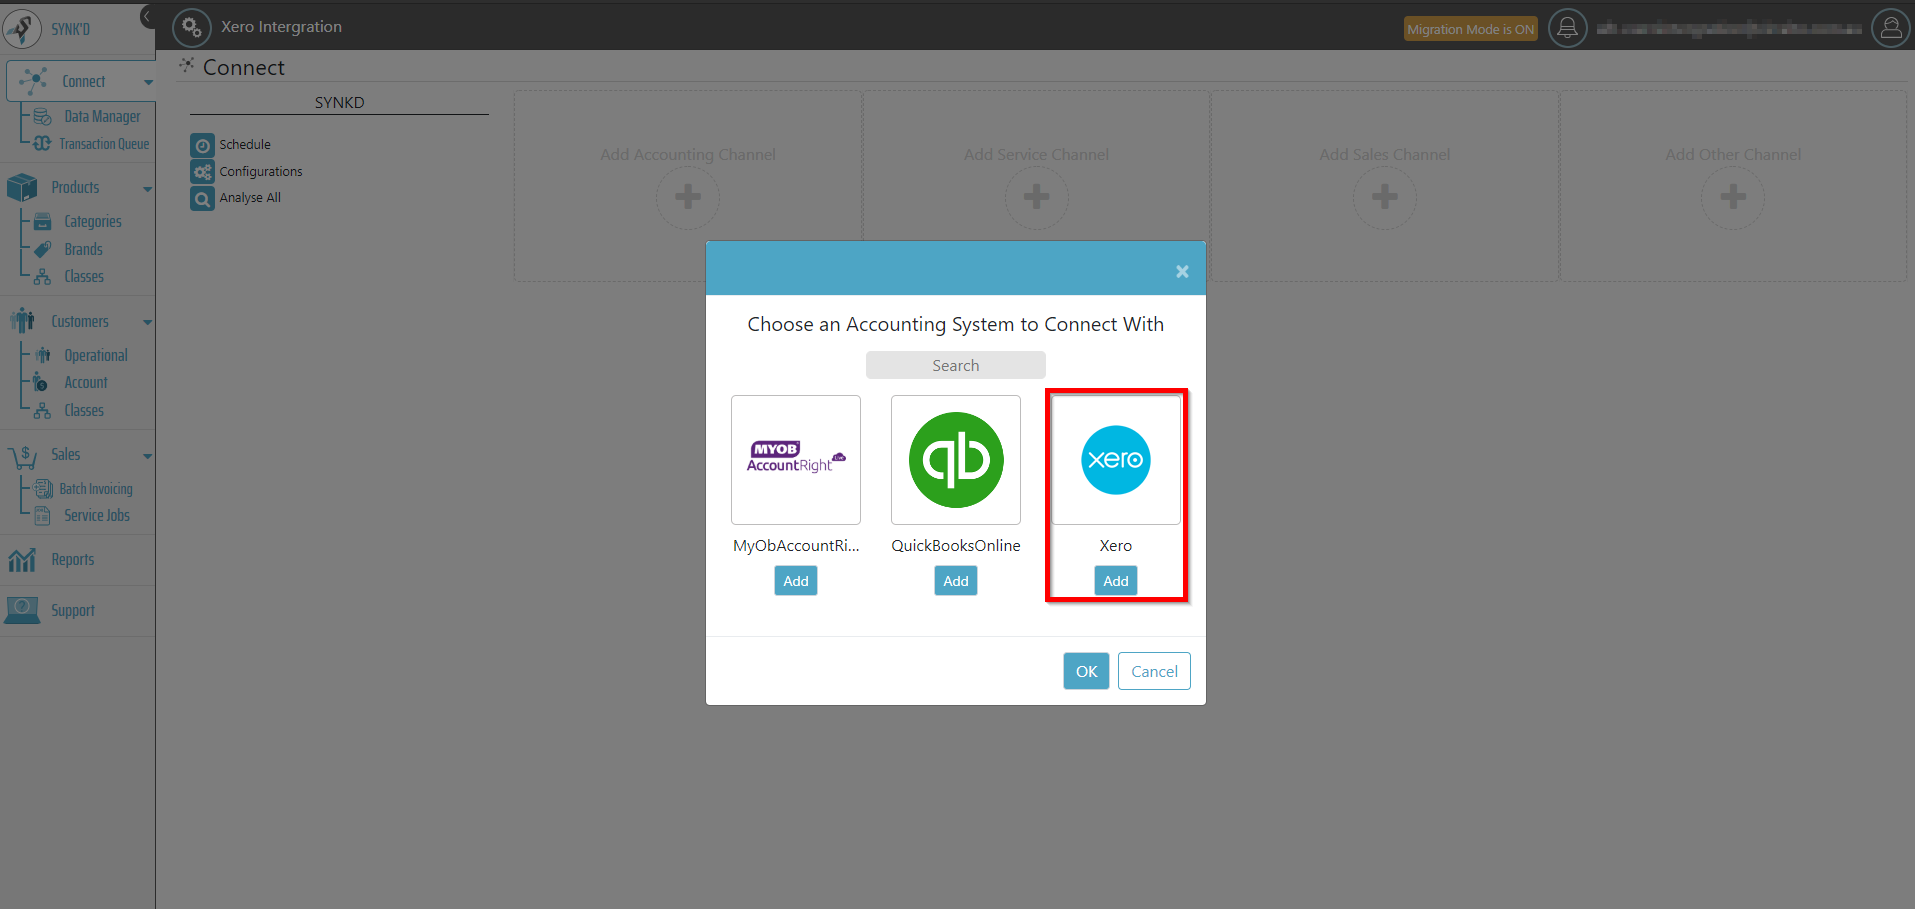 - 3. Select Xero as your accounting software.